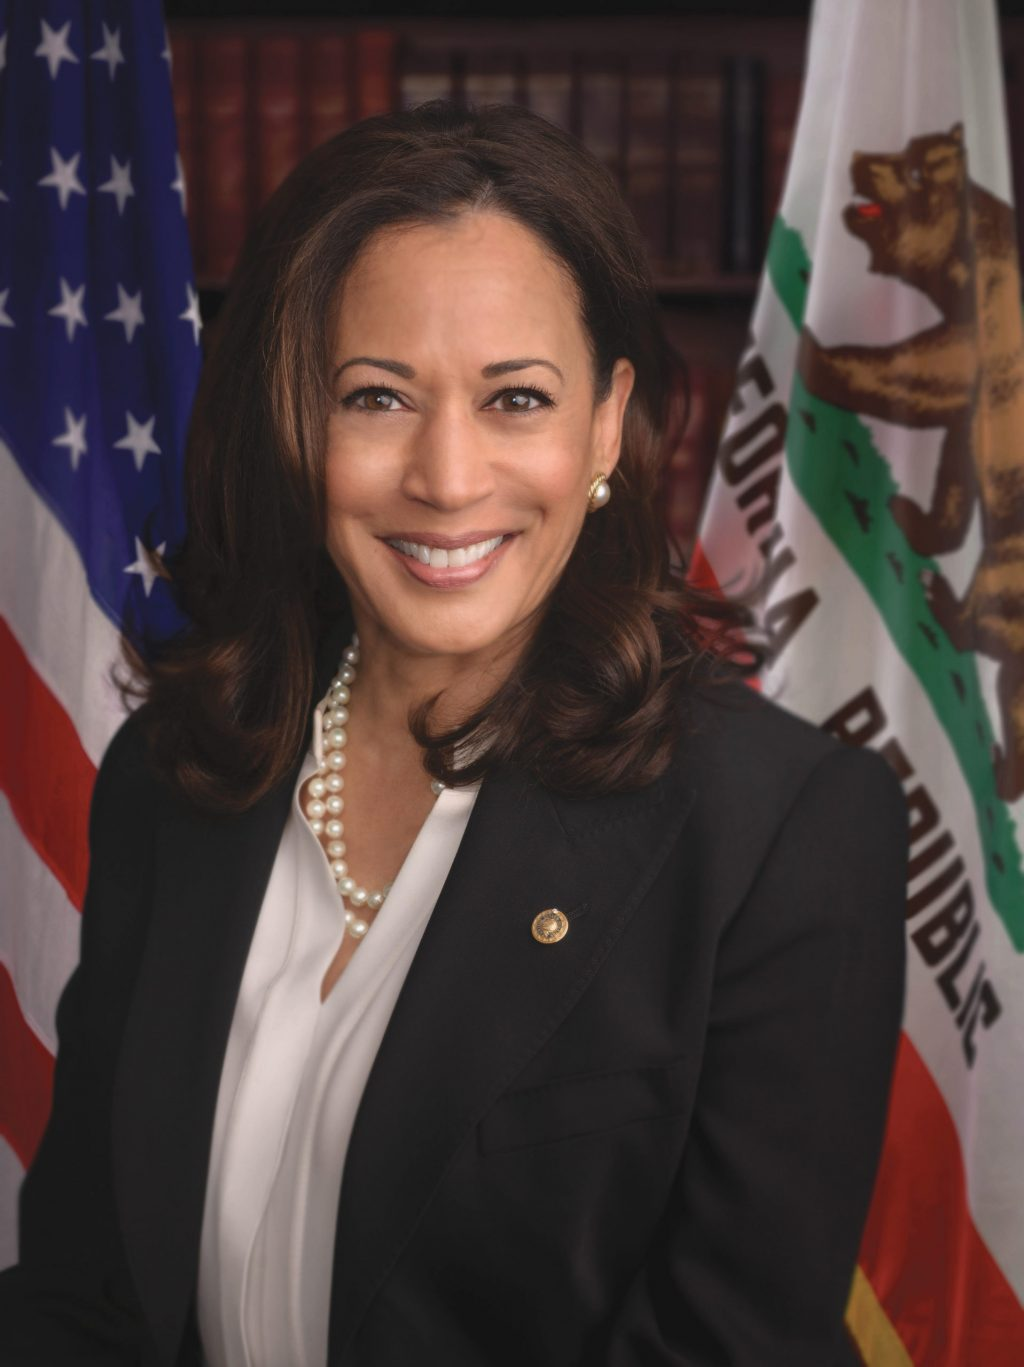 Harris IntroducesEQUALDefenseActto Boost Payand Resources, Limit Workload ofPublic Defenders